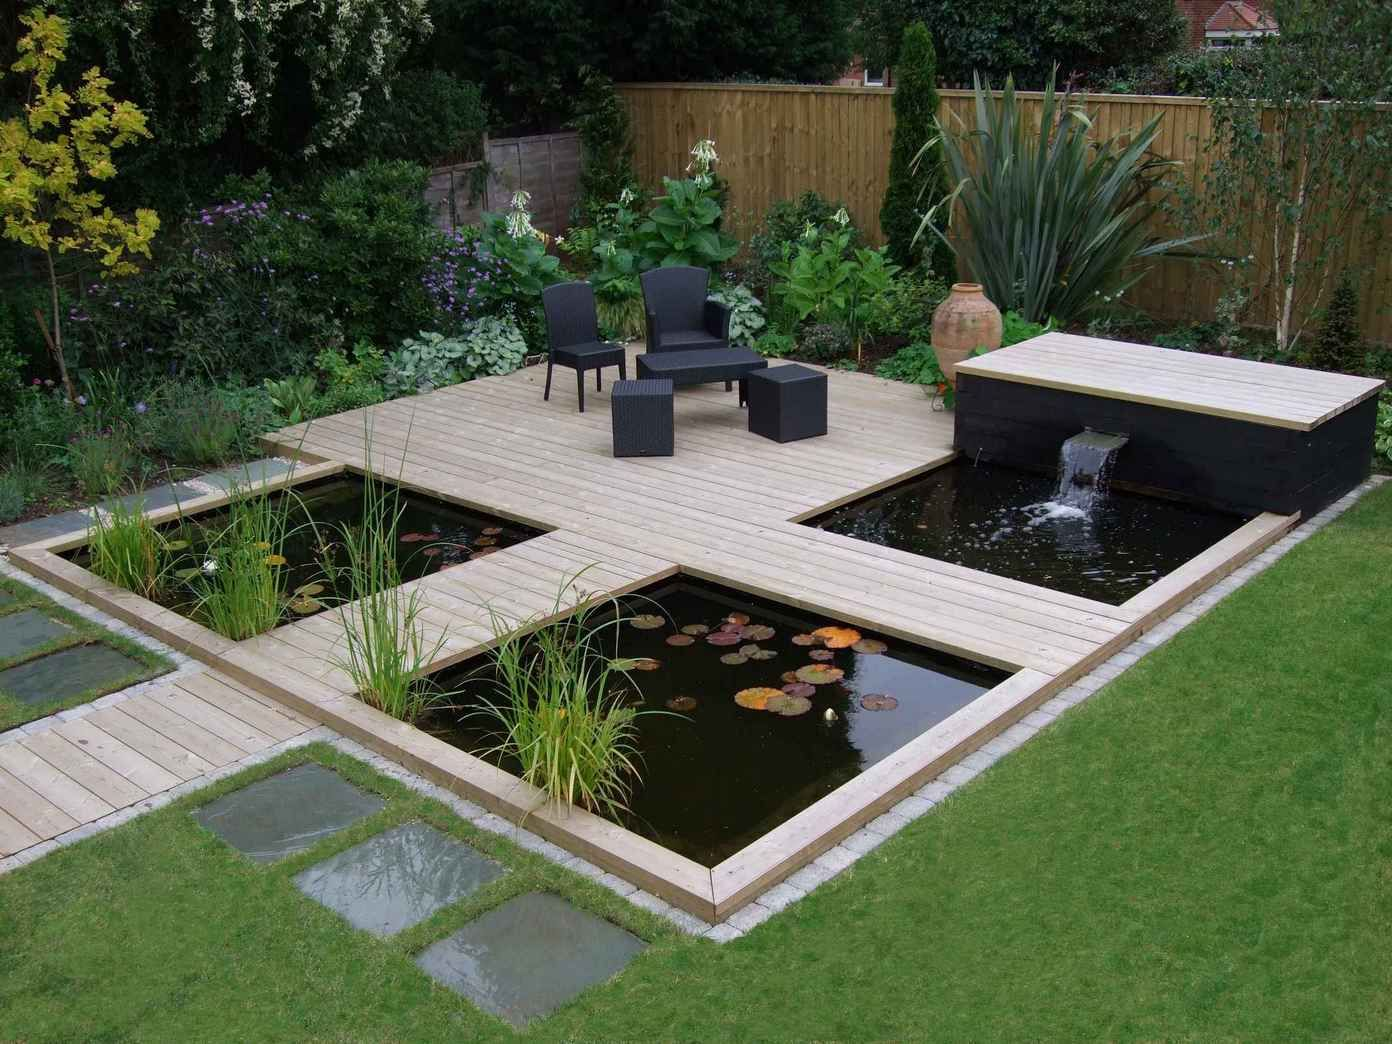 Fish pond designs pictures - 2018 Trending 15 Garden Designs To Watch For In 2018